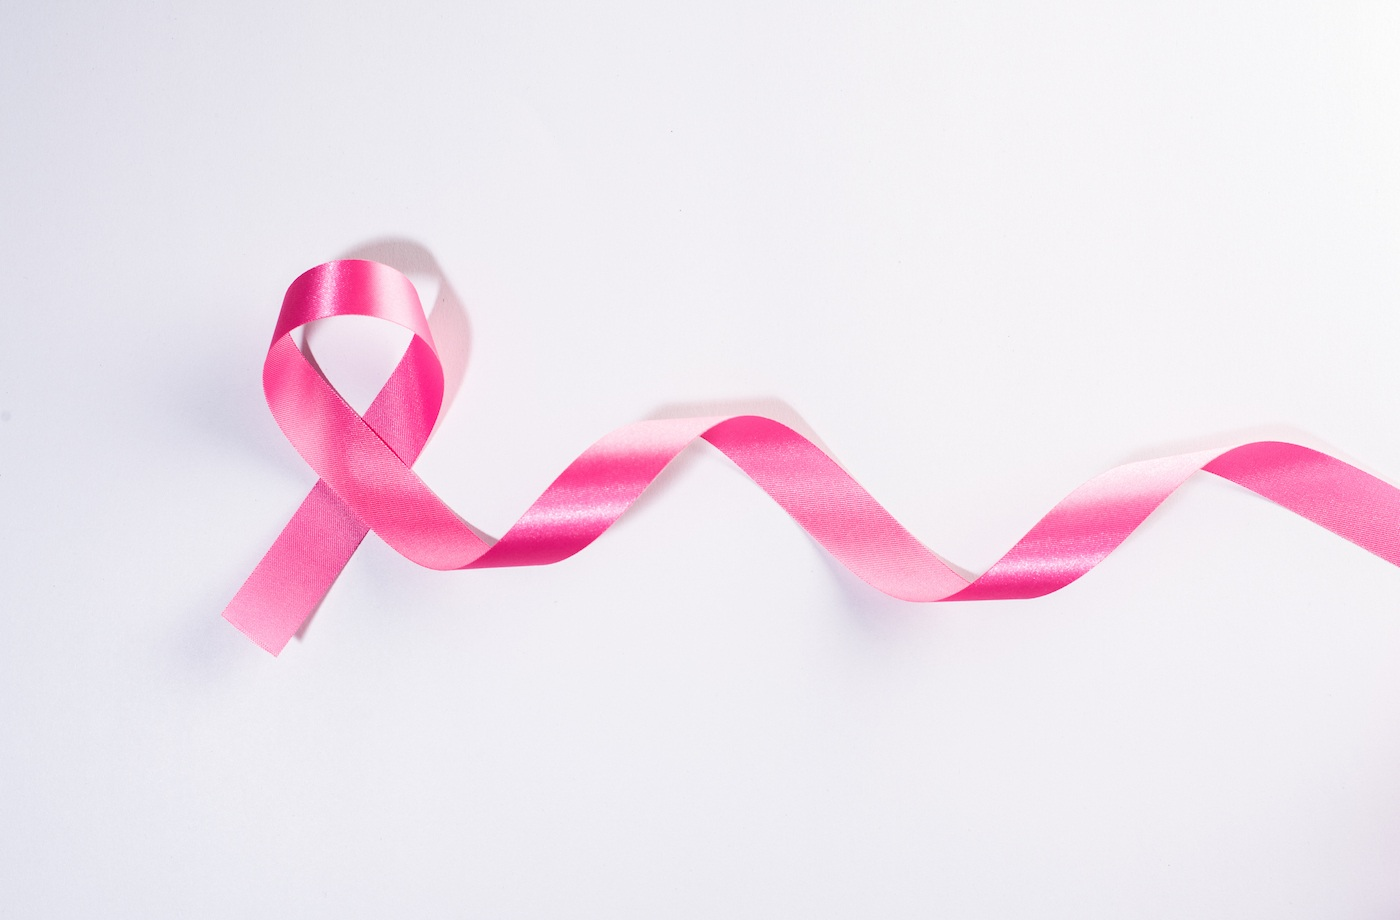 Thumbnail for Why other diseases deserve the breast cancer 'pink ribbon' treatment